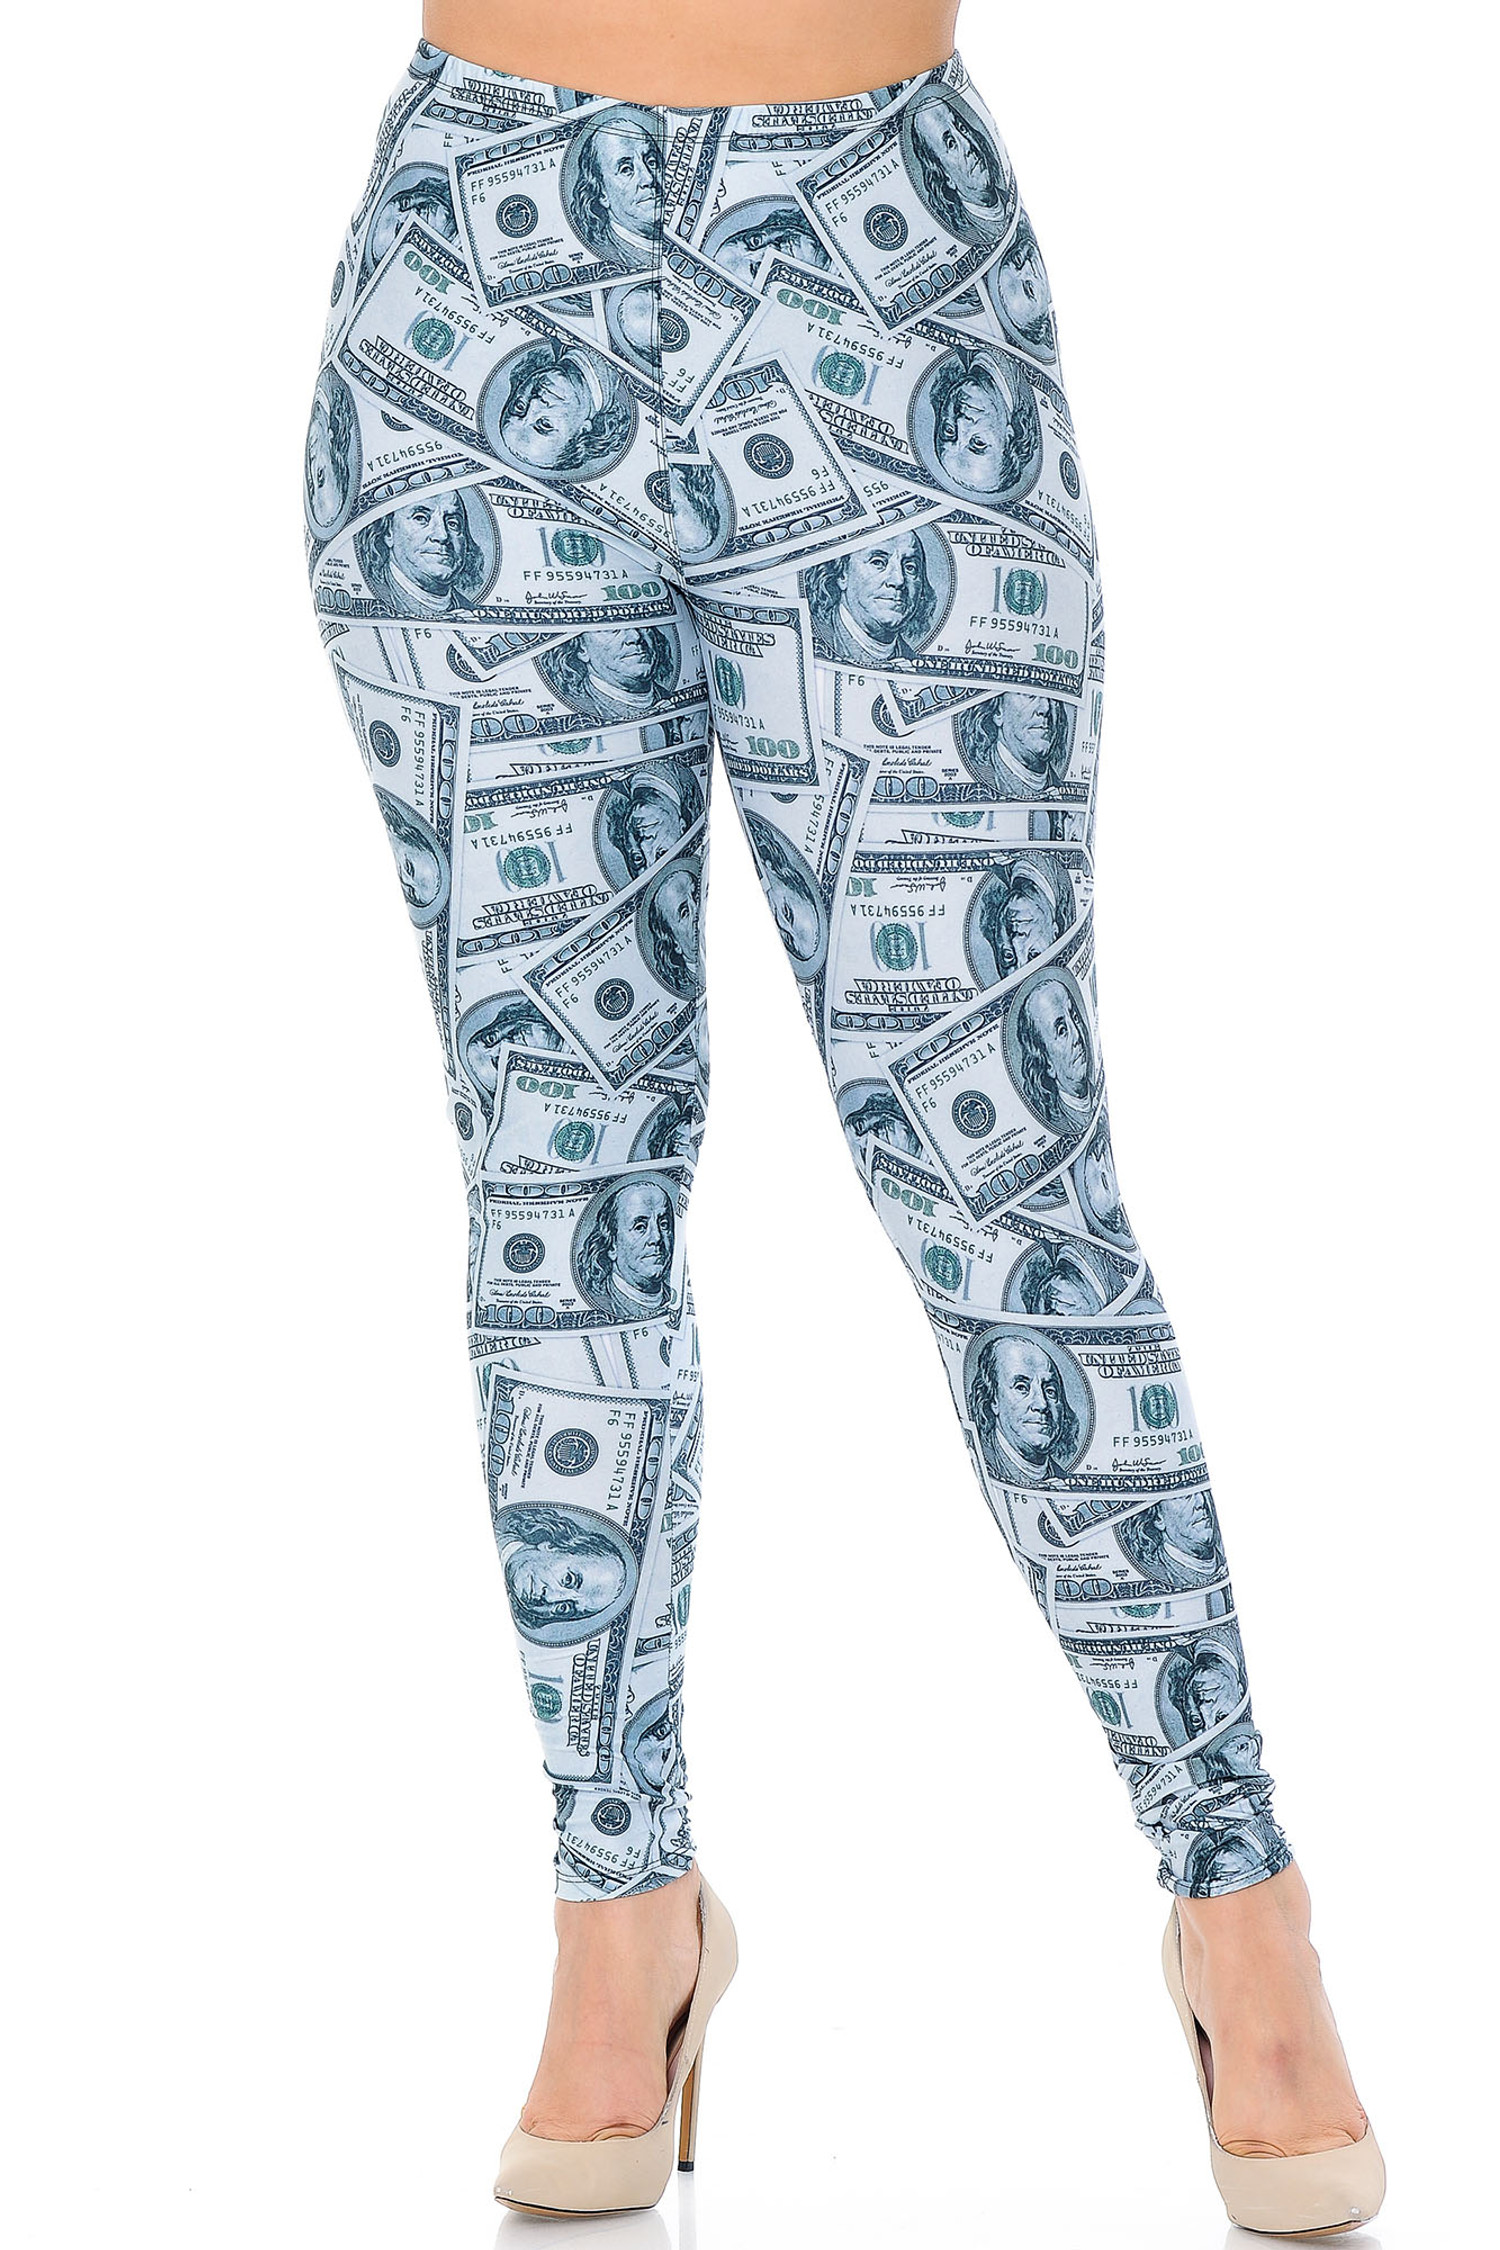 Creamy Soft Raining Money Extra Plus Size Leggings - 3X-5X - USA Fashion™